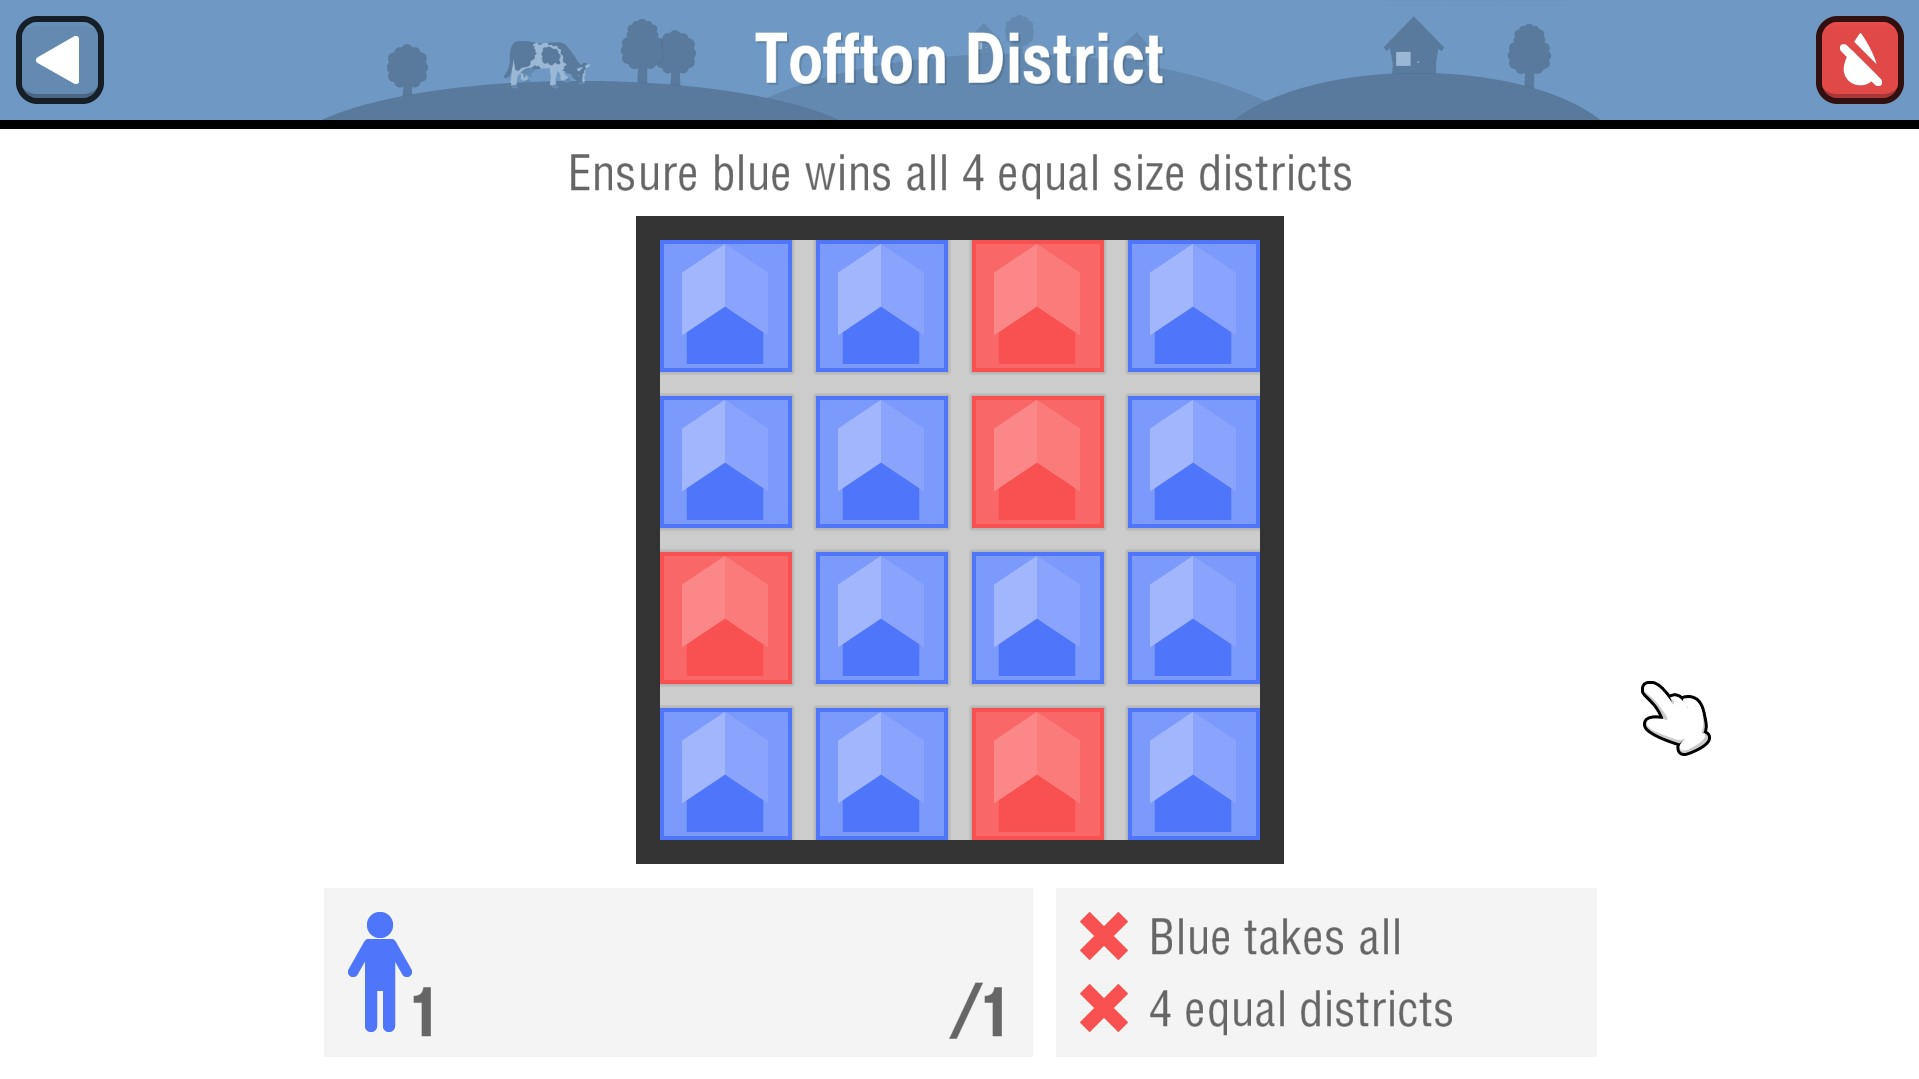 Toffton District